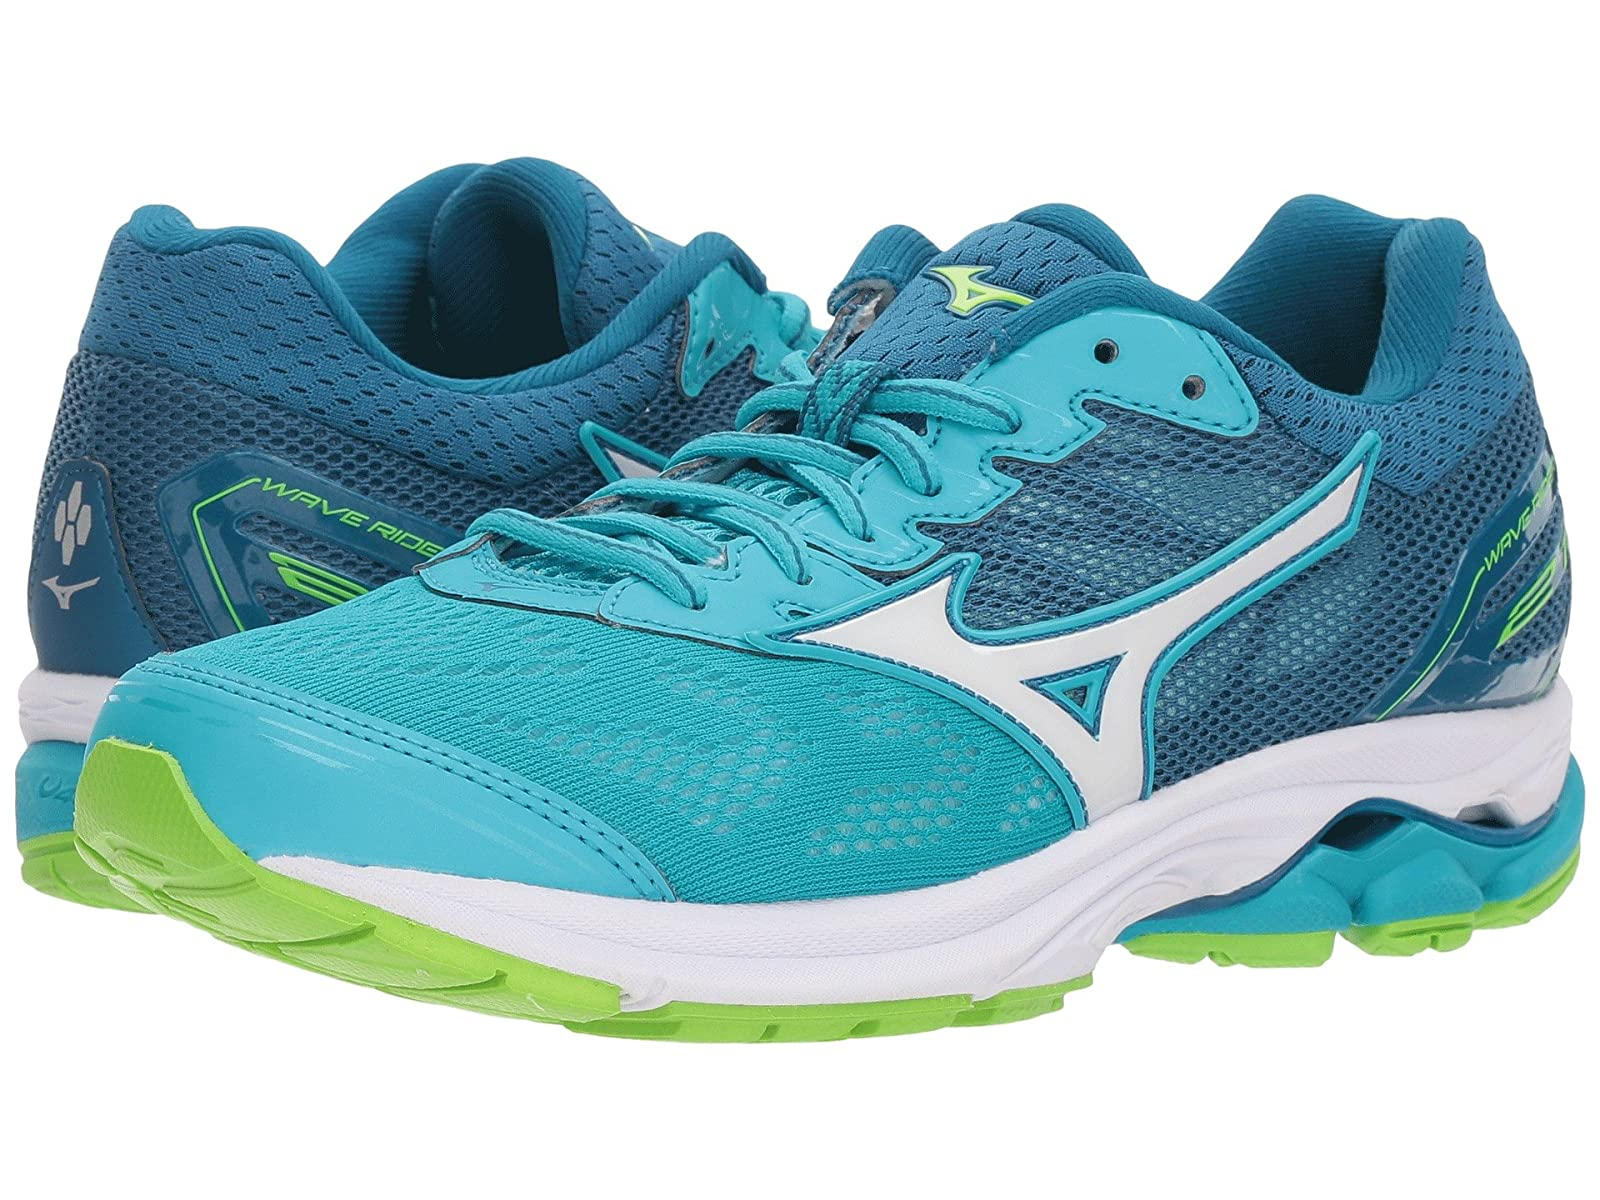 Mizuno Wave Rider 21Atmospheric grades have affordable shoes